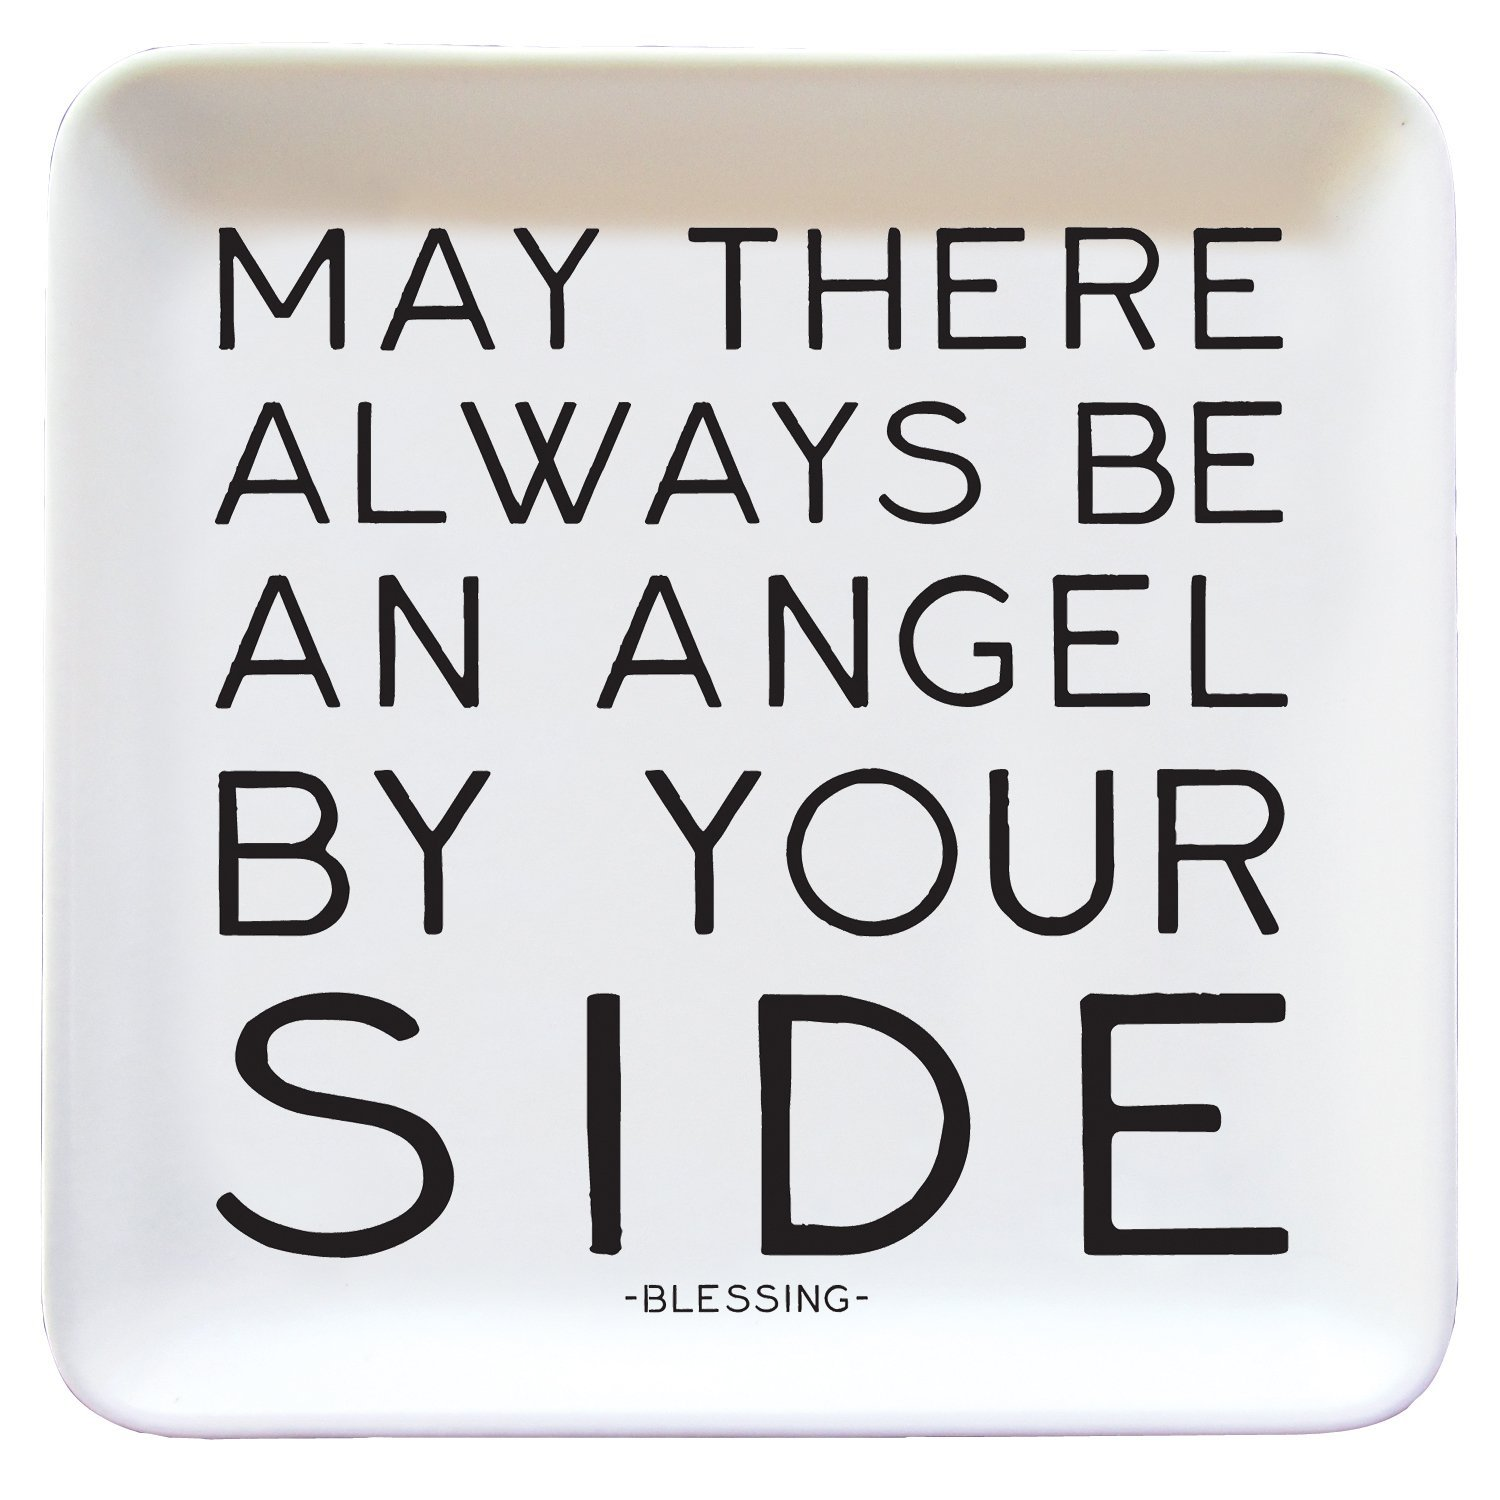 Quotable Dish May there always be an angel by your side.